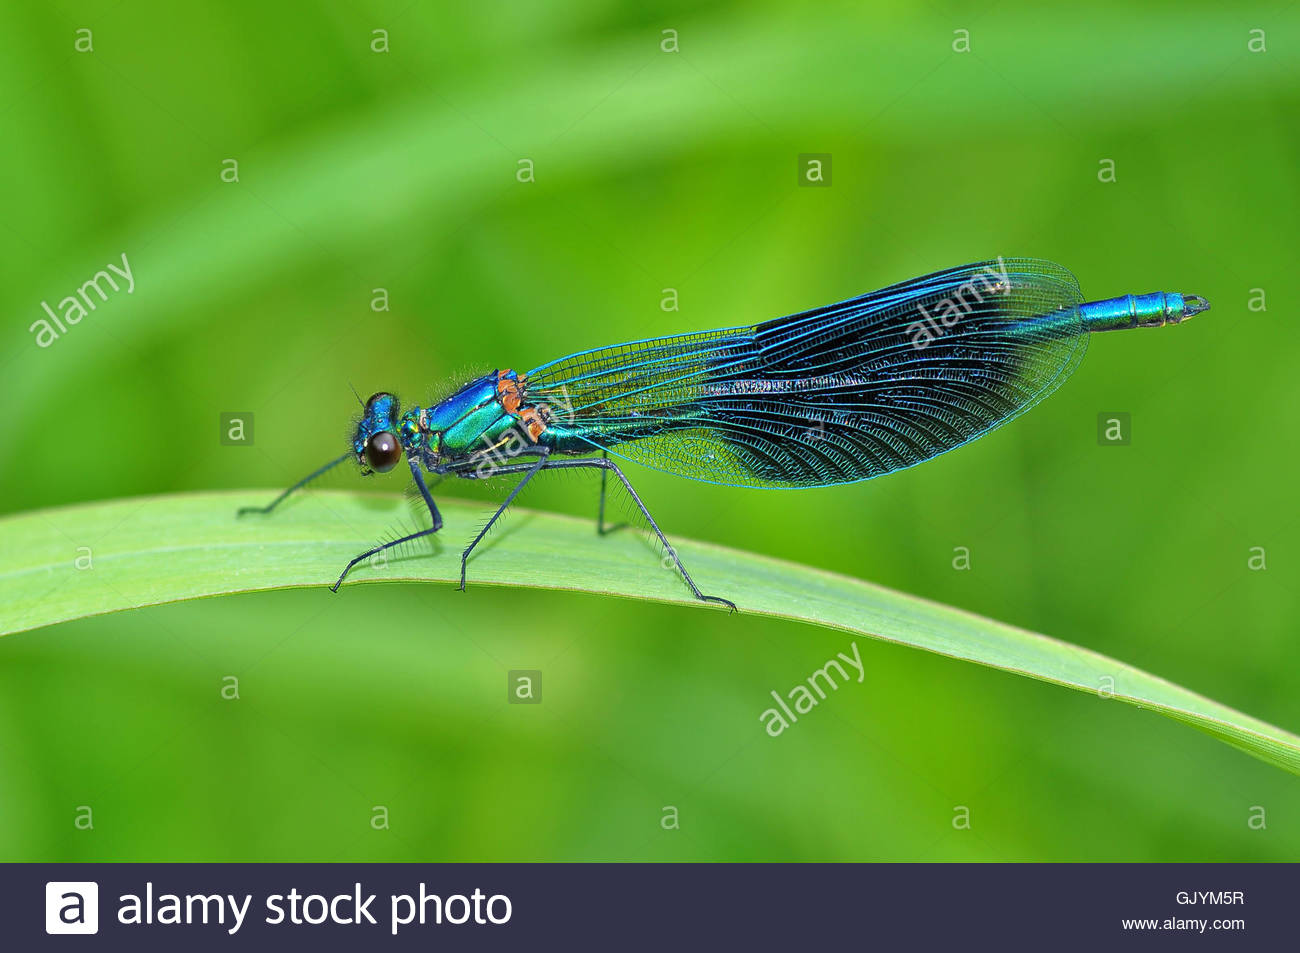 dragonfly dragonflies masculinely - Stock Image